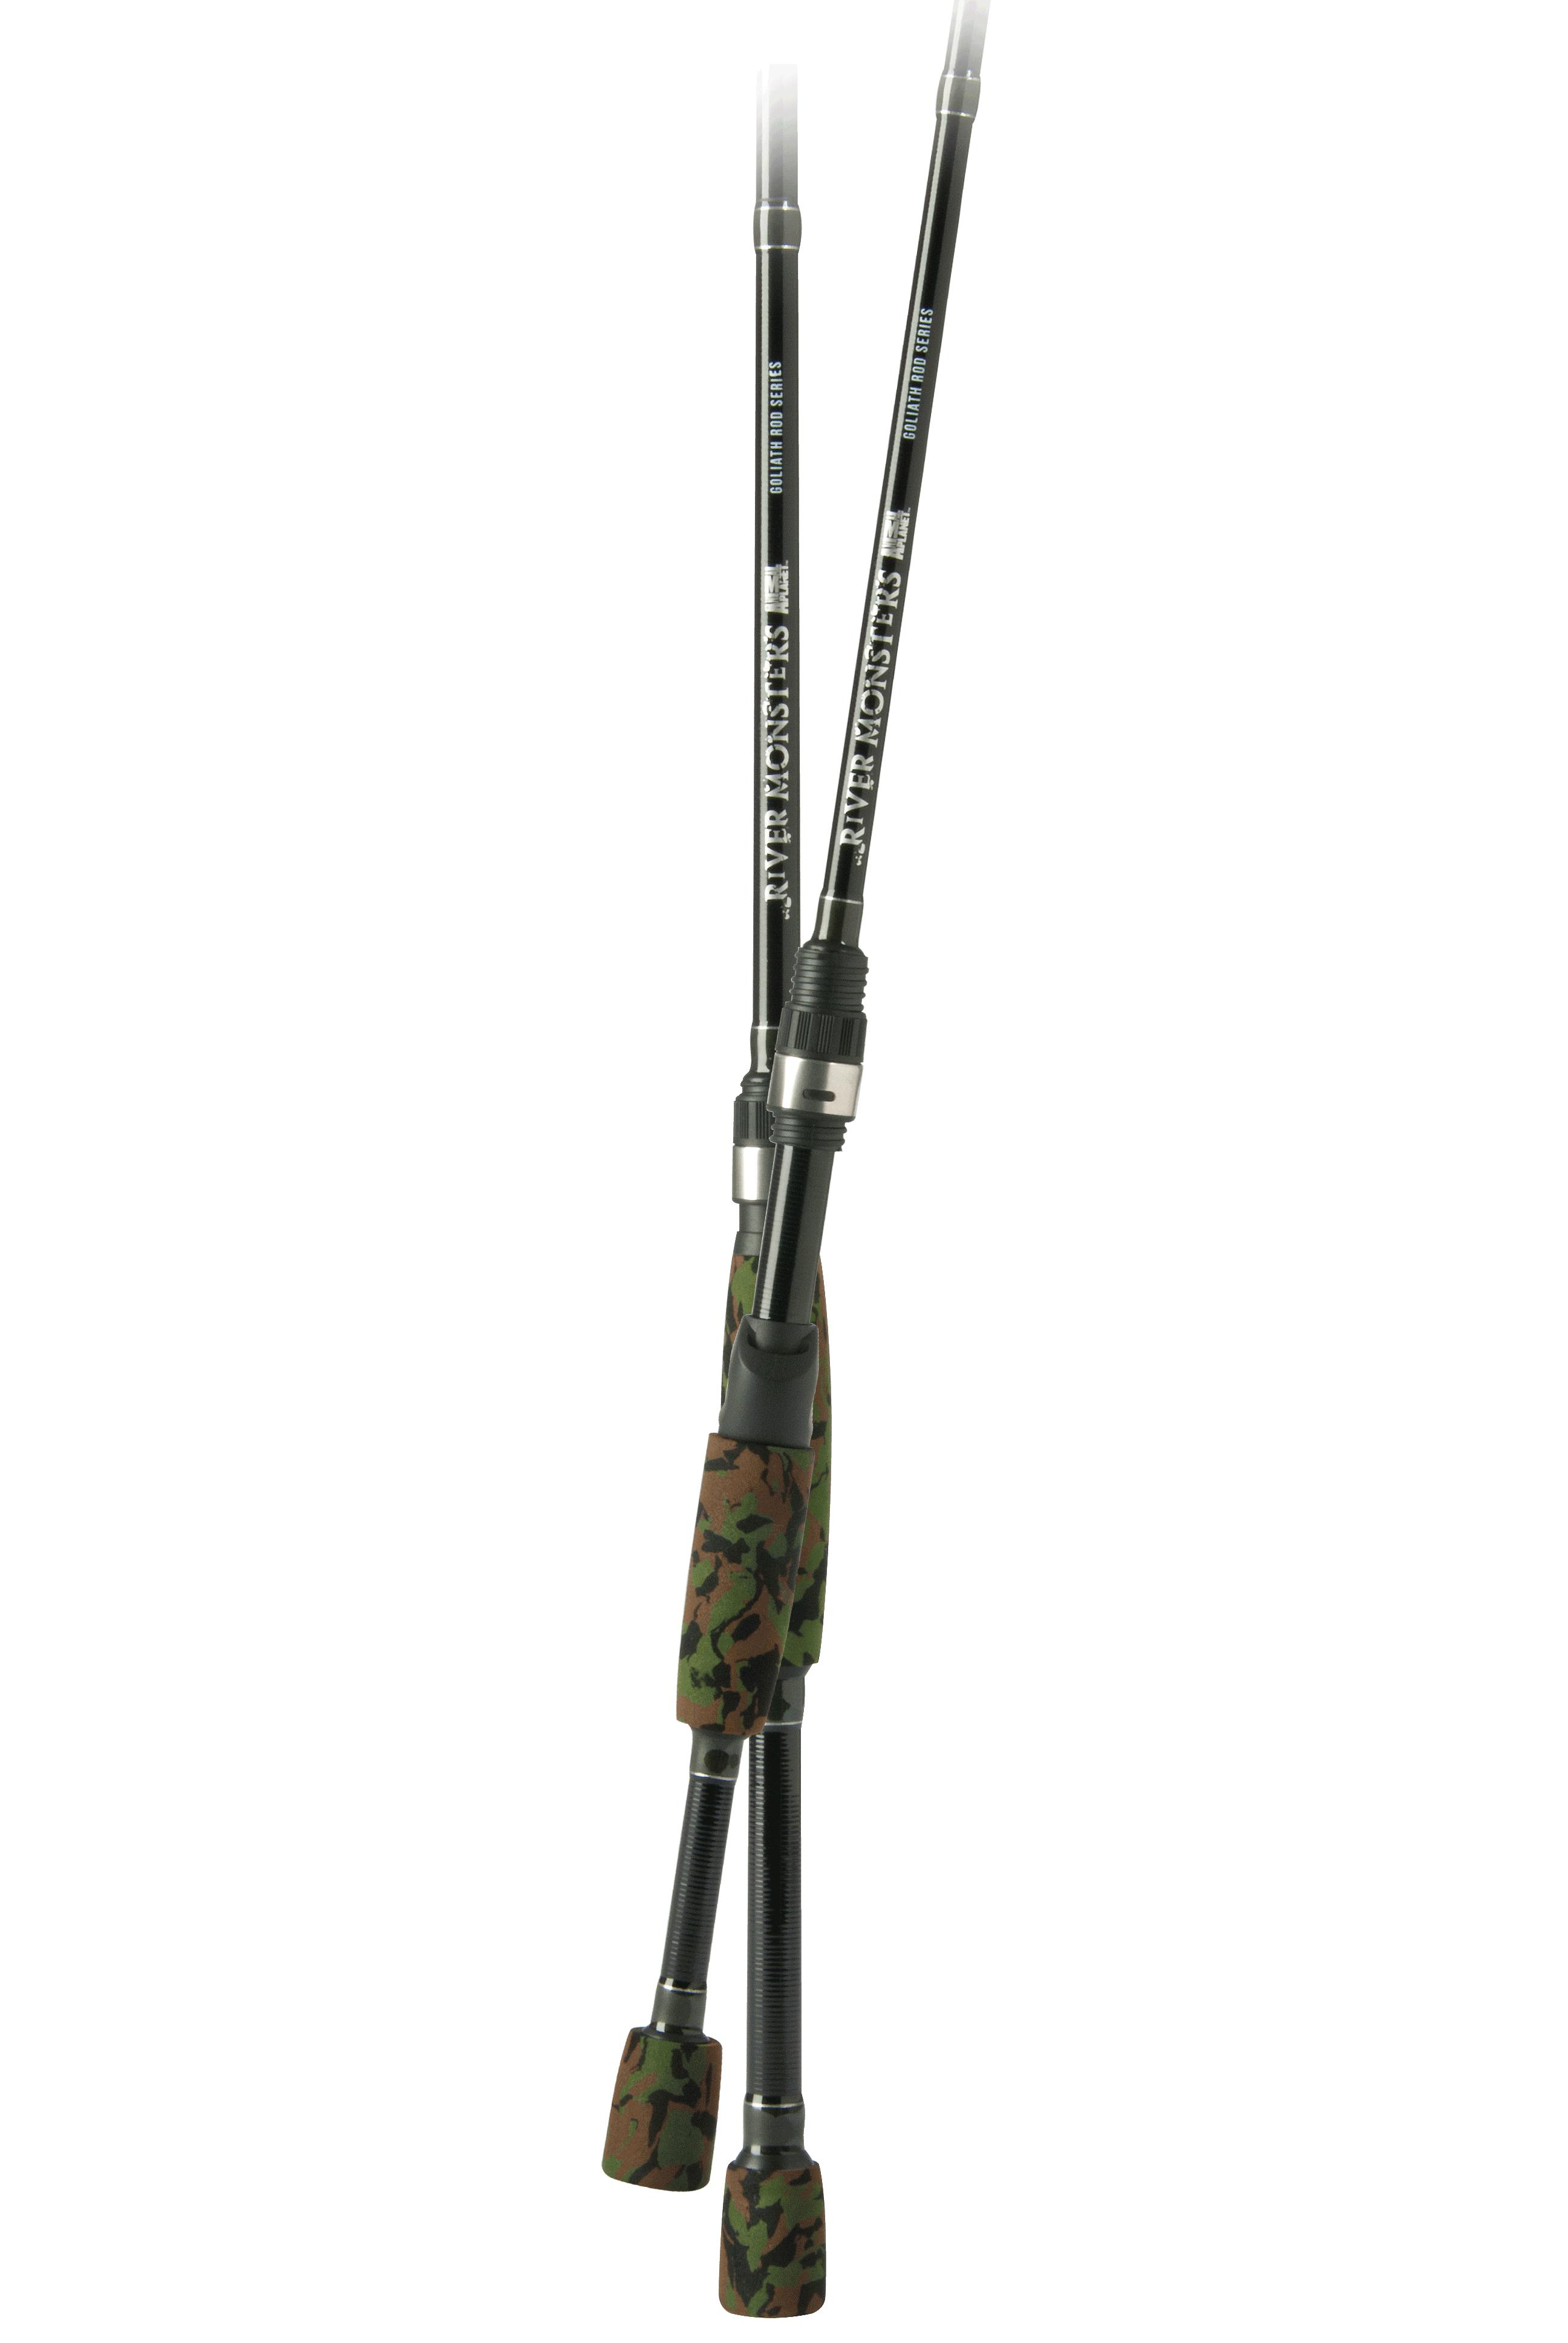 Animal planet debuts product additions for 2013 including for River fishing pole